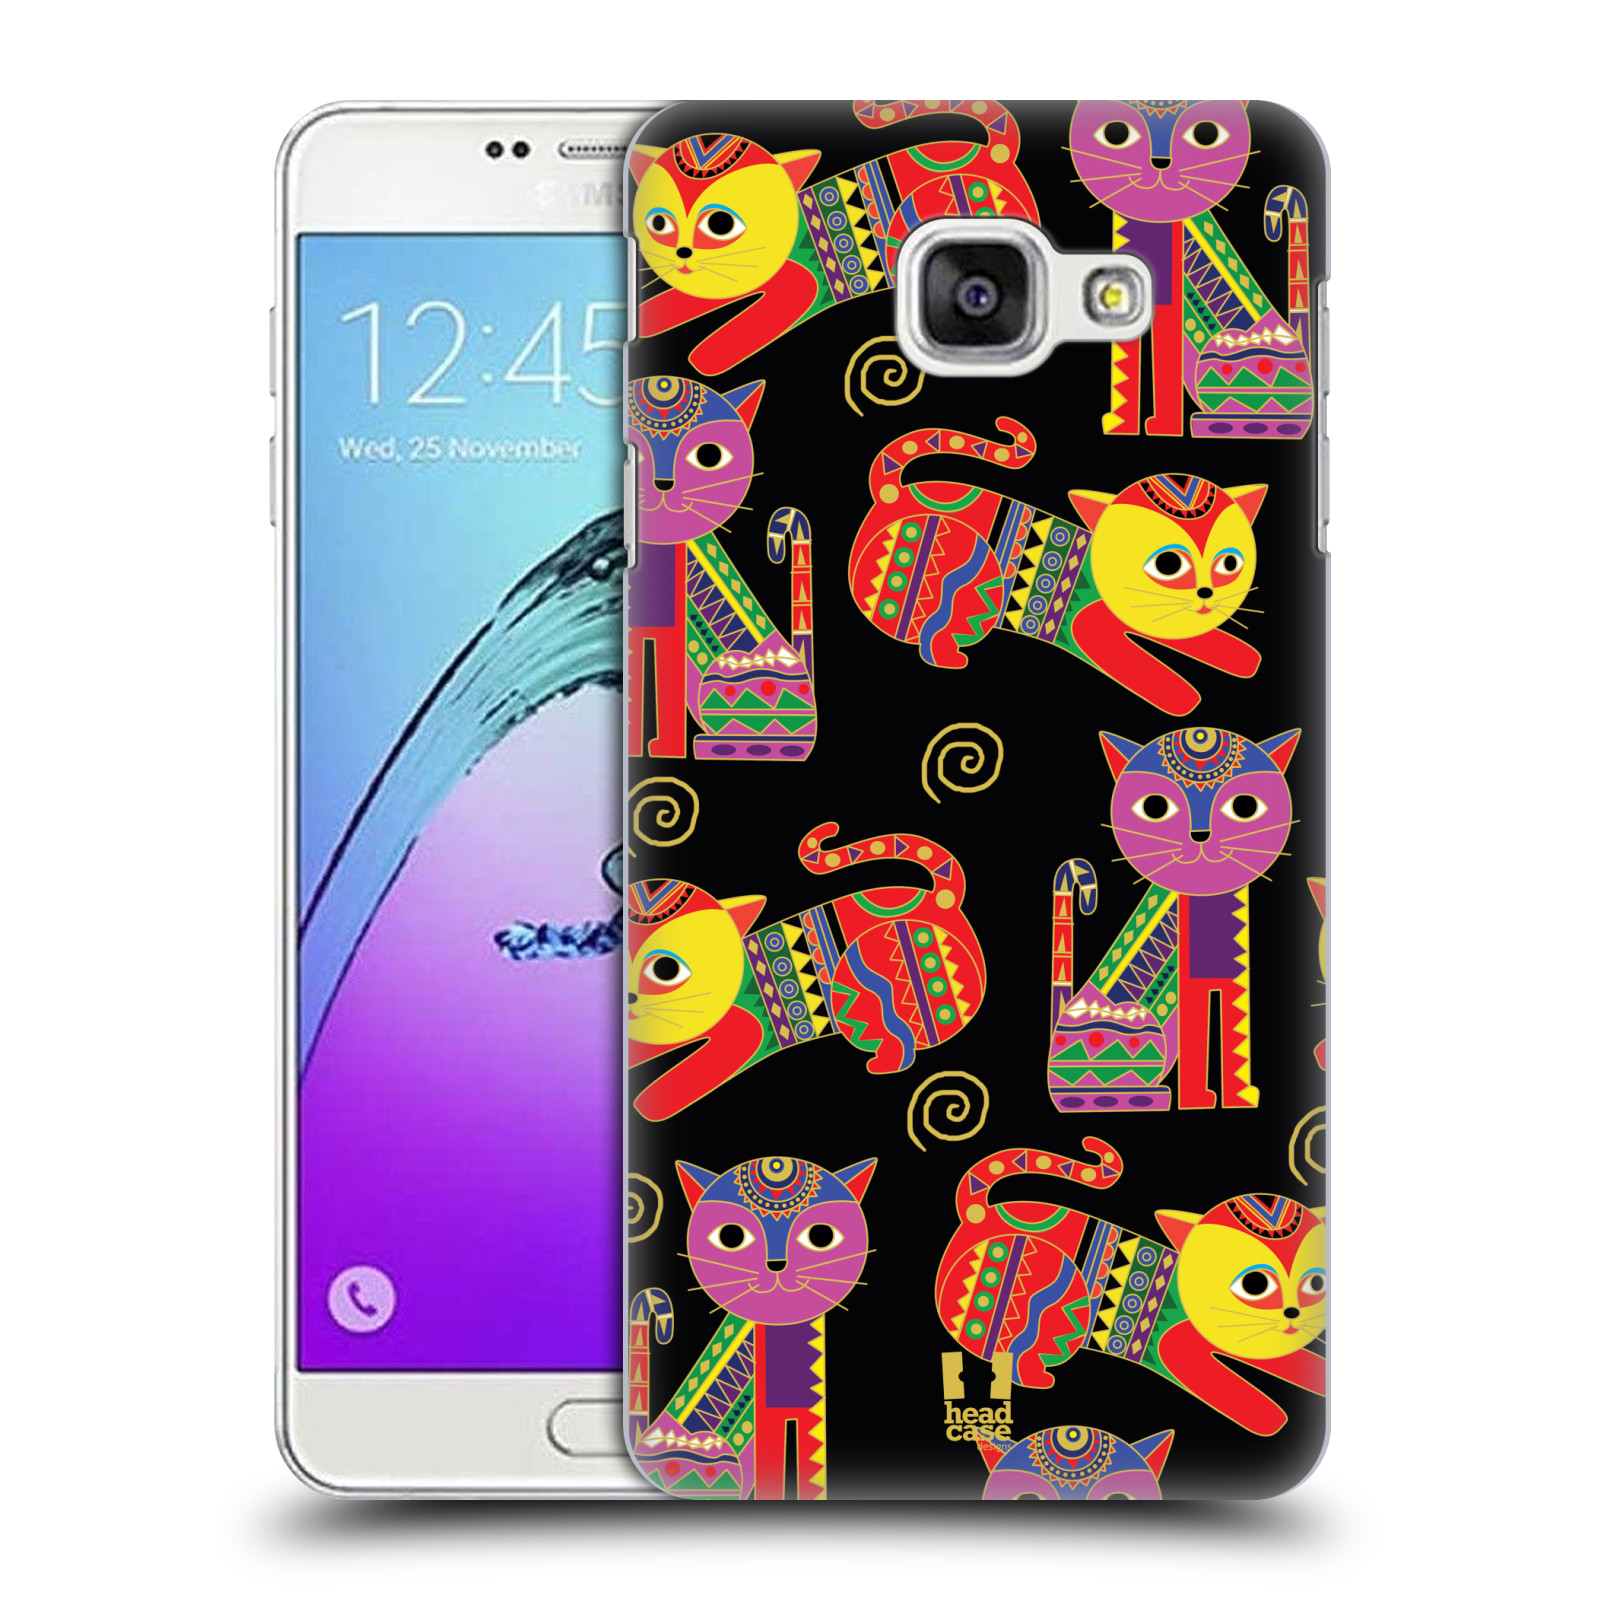 HEAD-CASE-DESIGNS-AZTEC-CATS-PATTERN-HARD-BACK-CASE-FOR-SAMSUNG-GALAXY-A7-2017